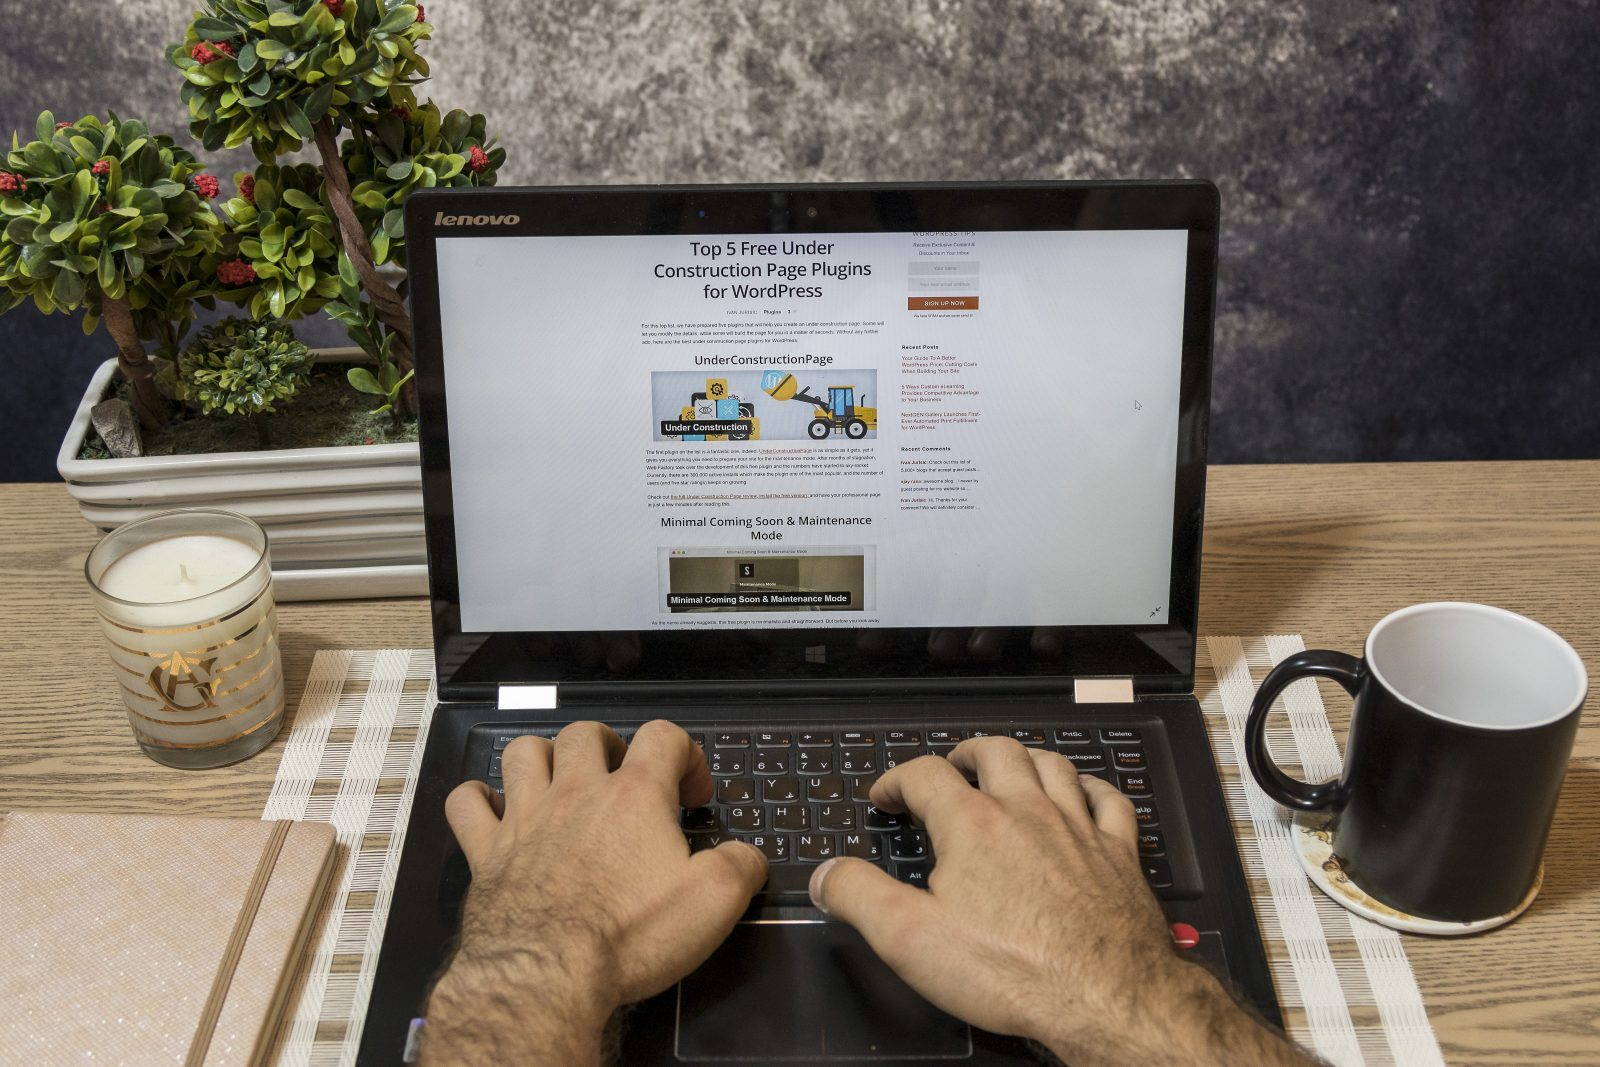 A laptop screen showing an article about under construction plugins